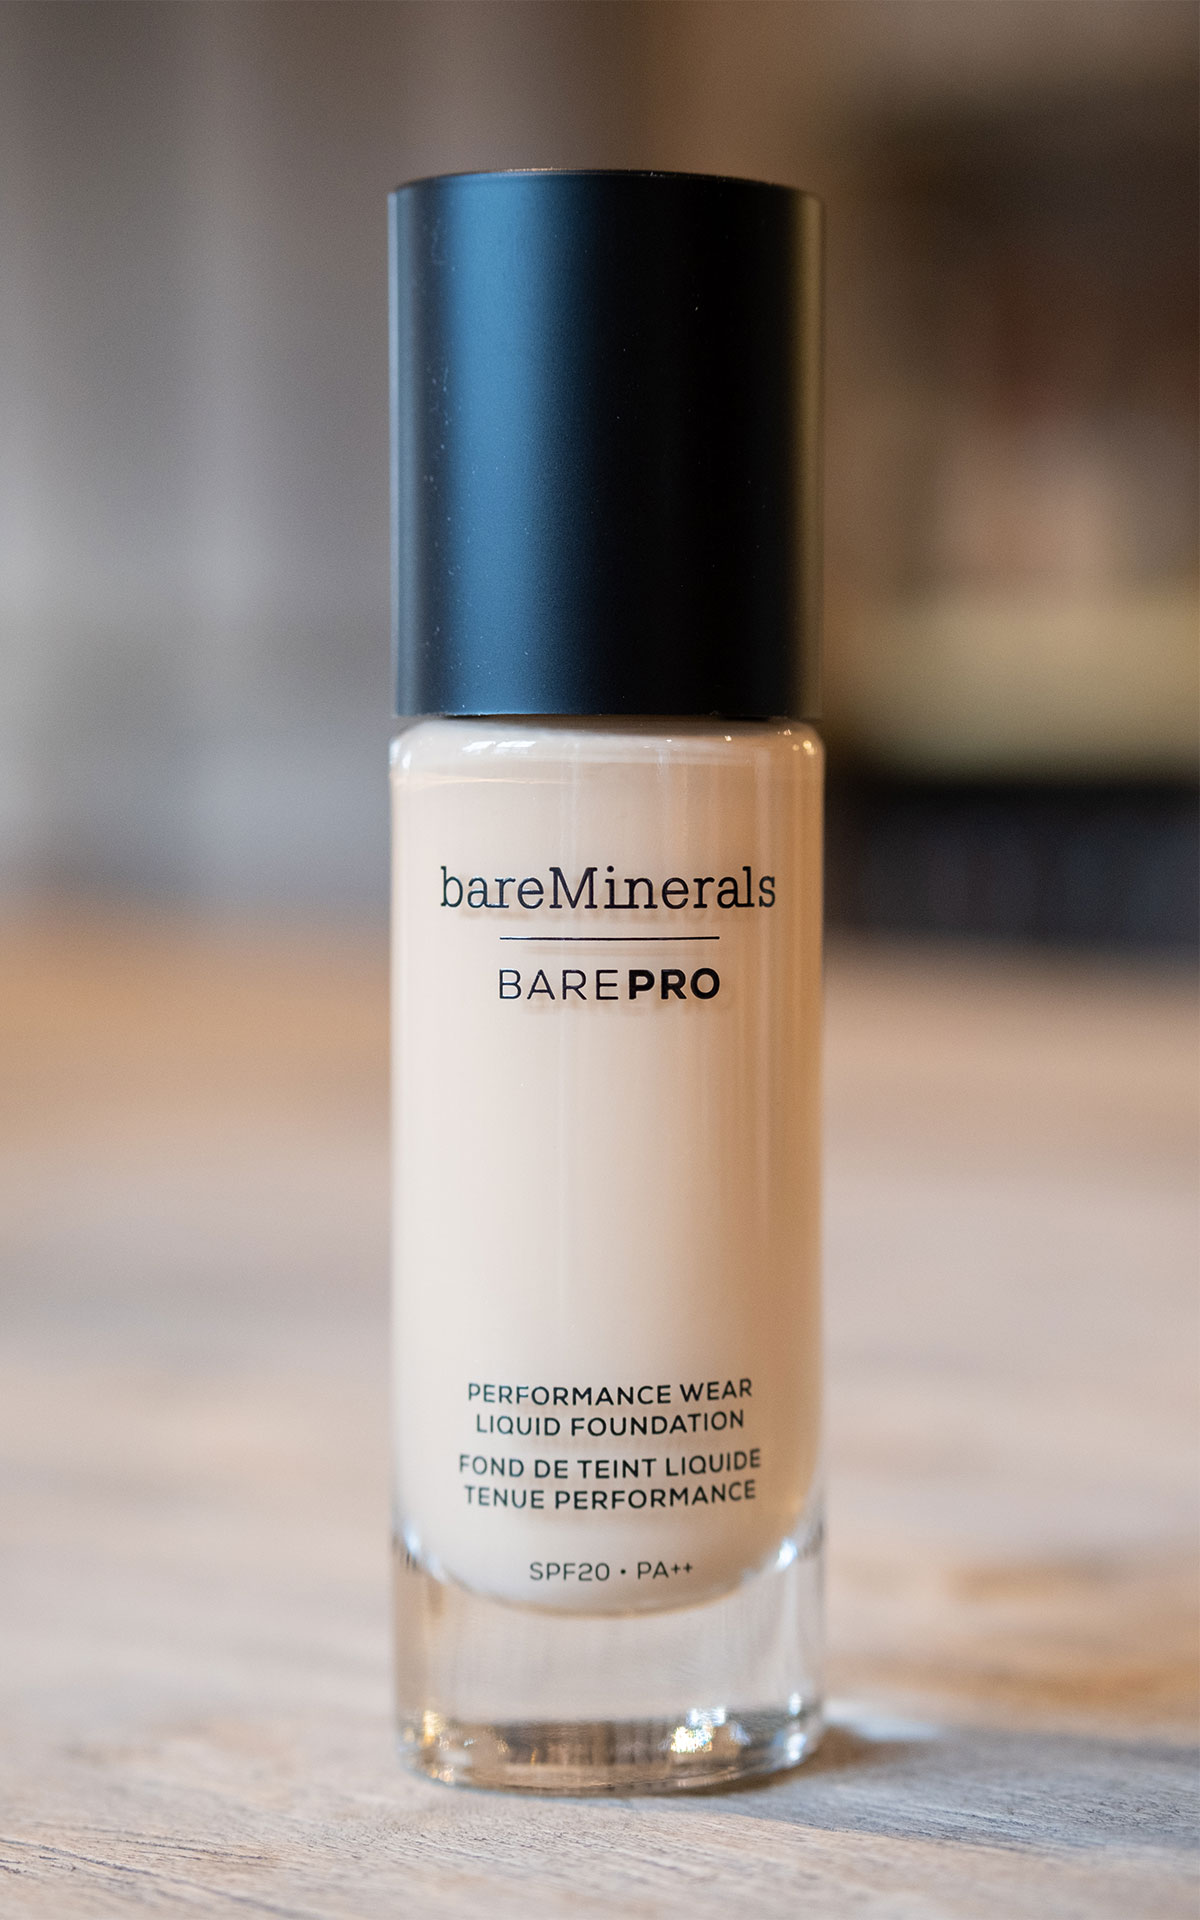 Beaute Prestige International bareMinerals Performance wear foundation from Bicester Village